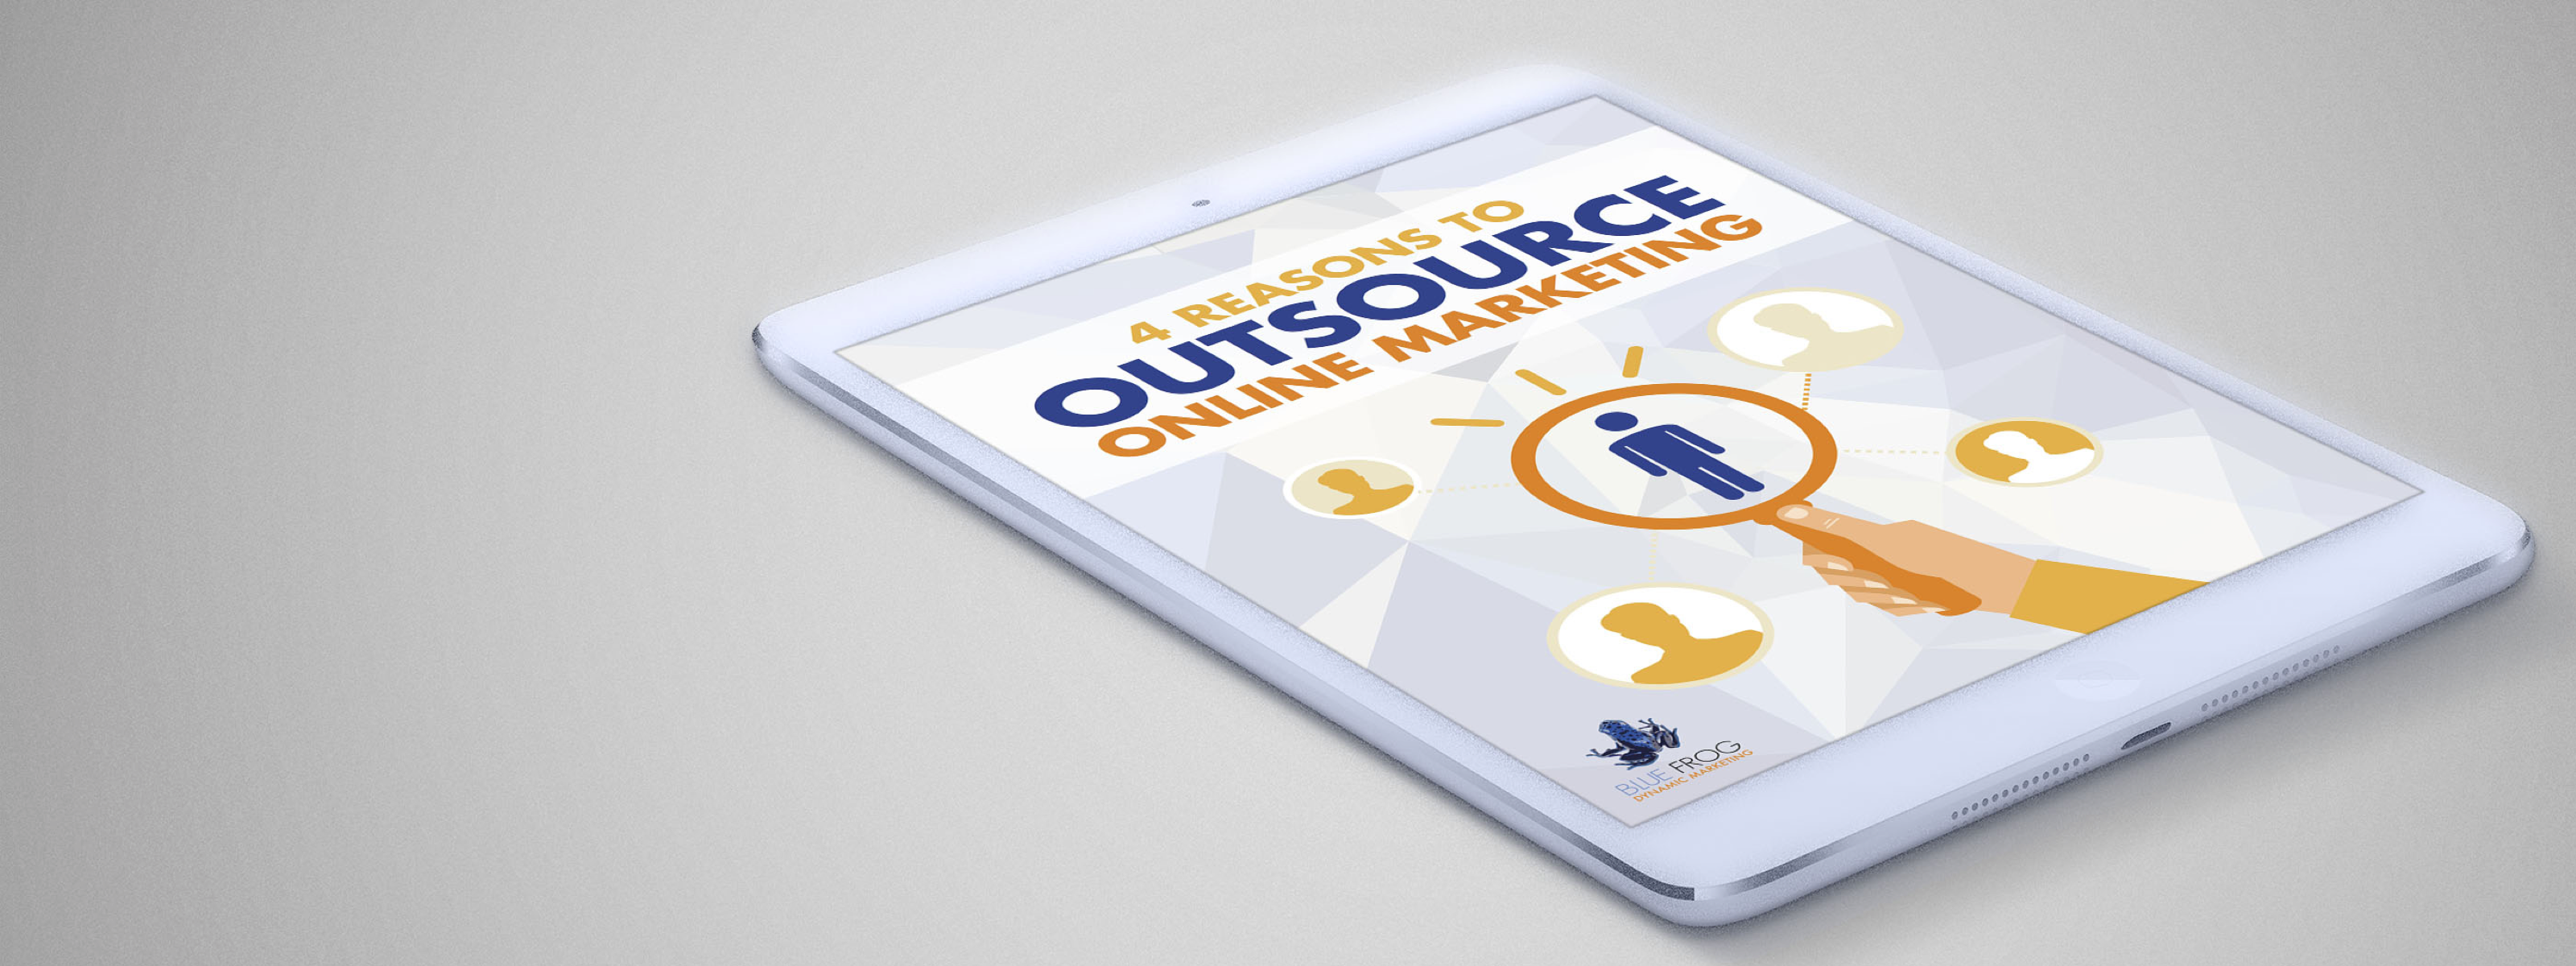 Wondering why you should outsource your online marketing?